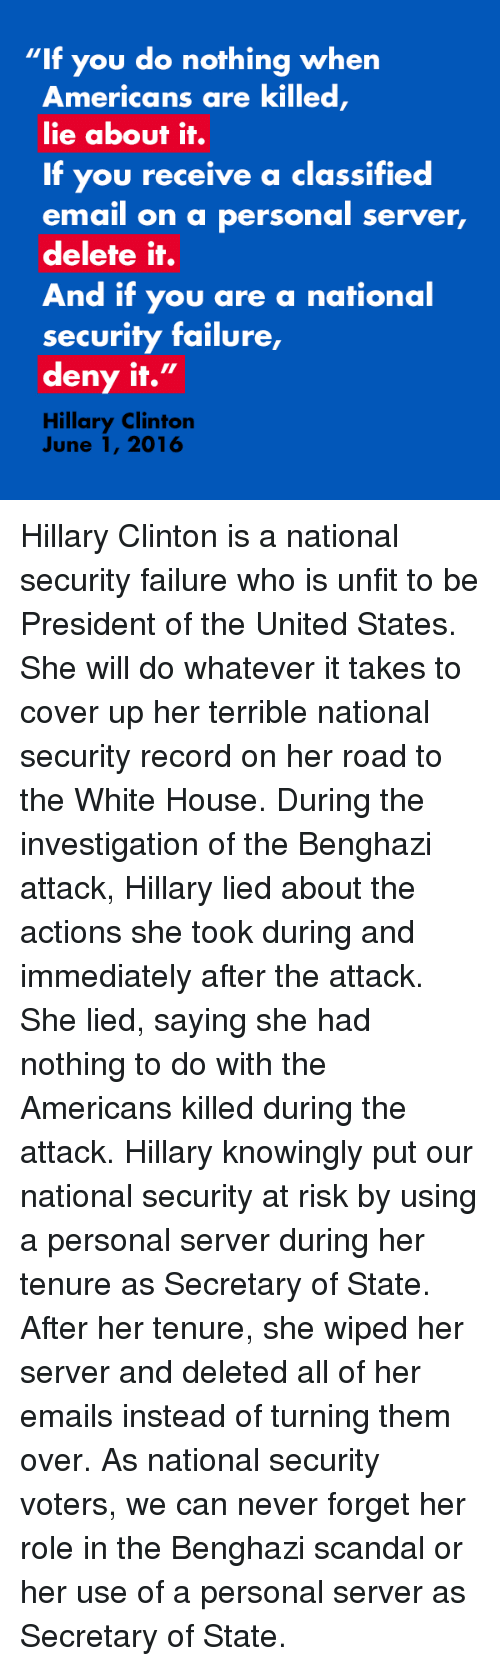 """Whatevs: """"If you do nothing when  Americans are killed  lie about it.  If you receive a classified  email on a personal server,  delete it.  And if you are a national  security failure,  deny it.  II  Hillary Clinton  June 1, 2016 Hillary Clinton is a national security failure who is unfit to be President of the United States. She will do whatever it takes to cover up her terrible national security record on her road to the White House. During the investigation of the Benghazi attack, Hillary lied about the actions she took during and immediately after the attack. She lied, saying she had nothing to do with the Americans killed during the attack. Hillary knowingly put our national security at risk by using a personal server during her tenure as Secretary of State. After her tenure, she wiped her server and deleted all of her emails instead of turning them over. As national security voters, we can never forget her role in the Benghazi scandal or her use of a personal server as Secretary of State."""